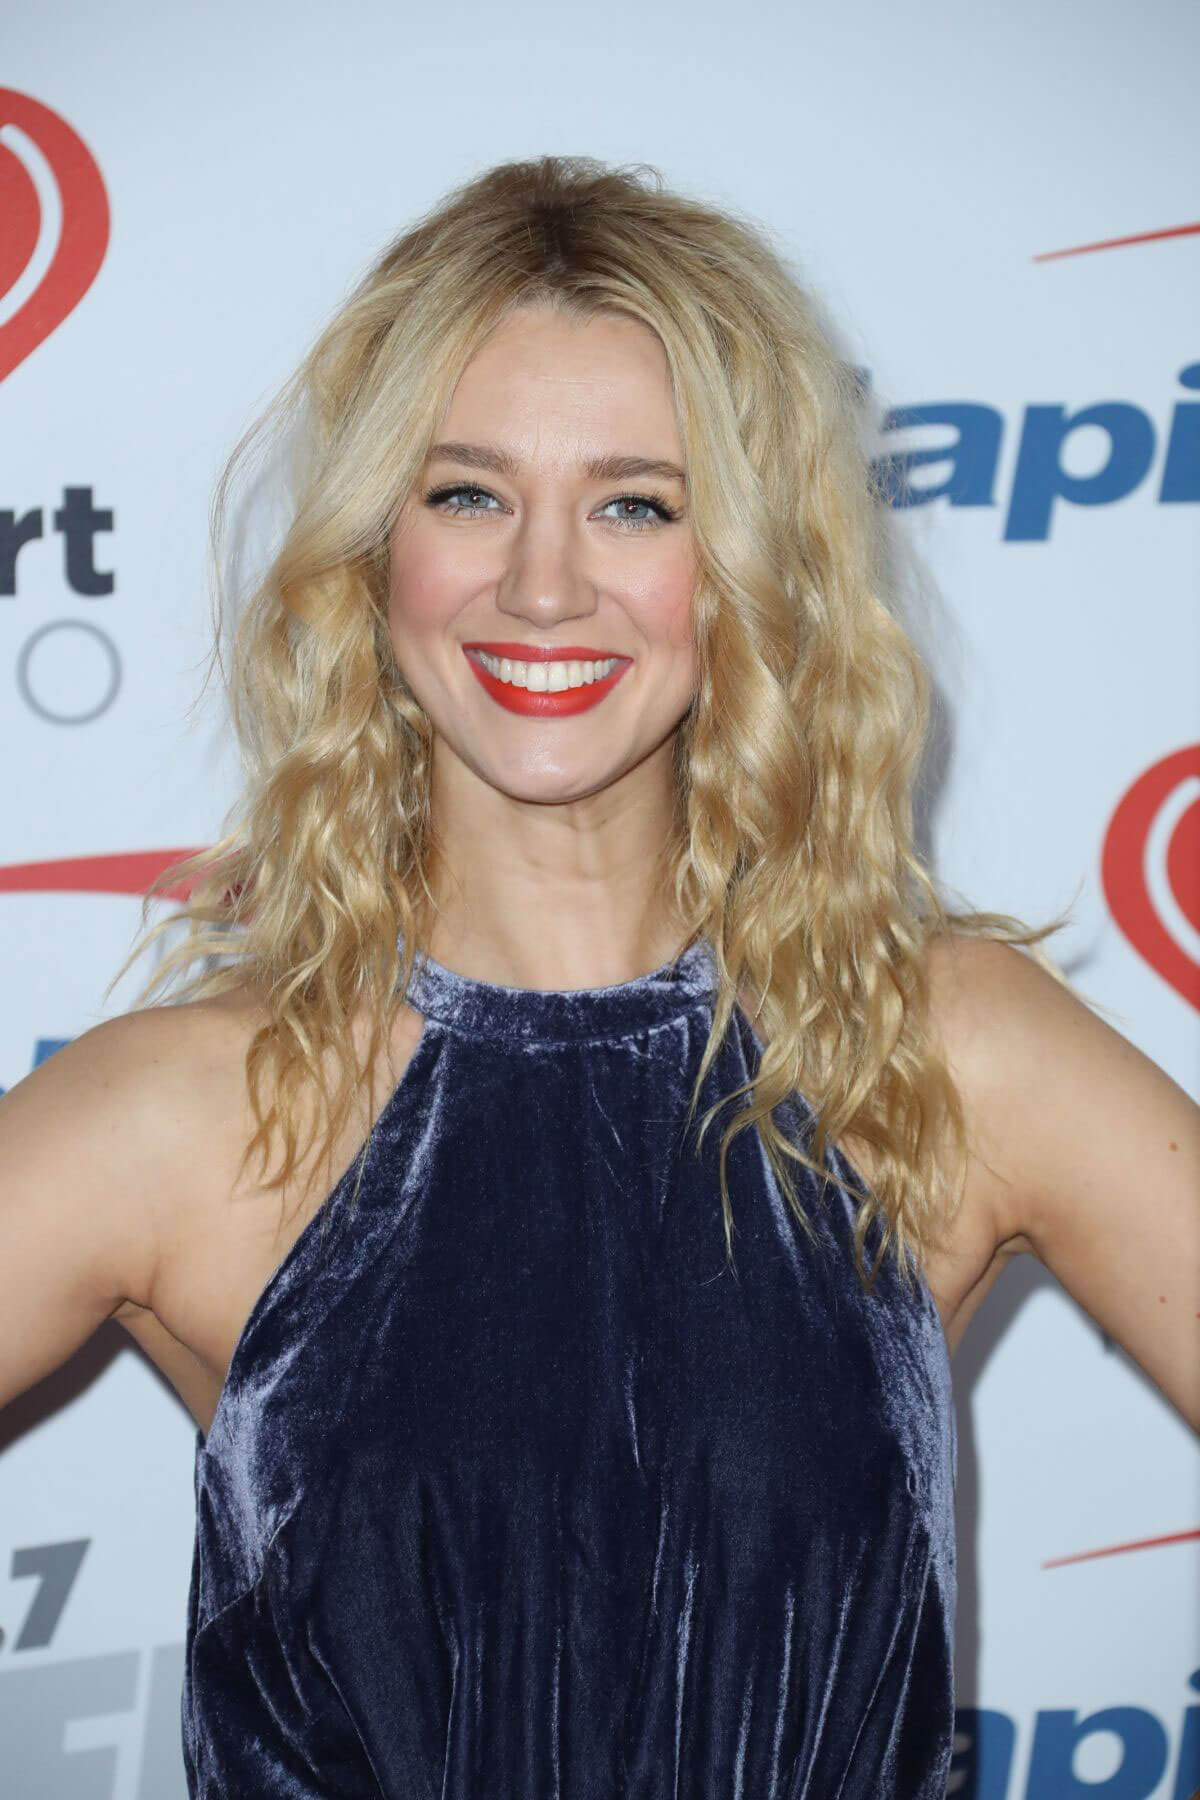 Yael Ball 102 Fm's Los Kiis Angeles 7 Grobglas At In Jingle Stills tQxCshrd